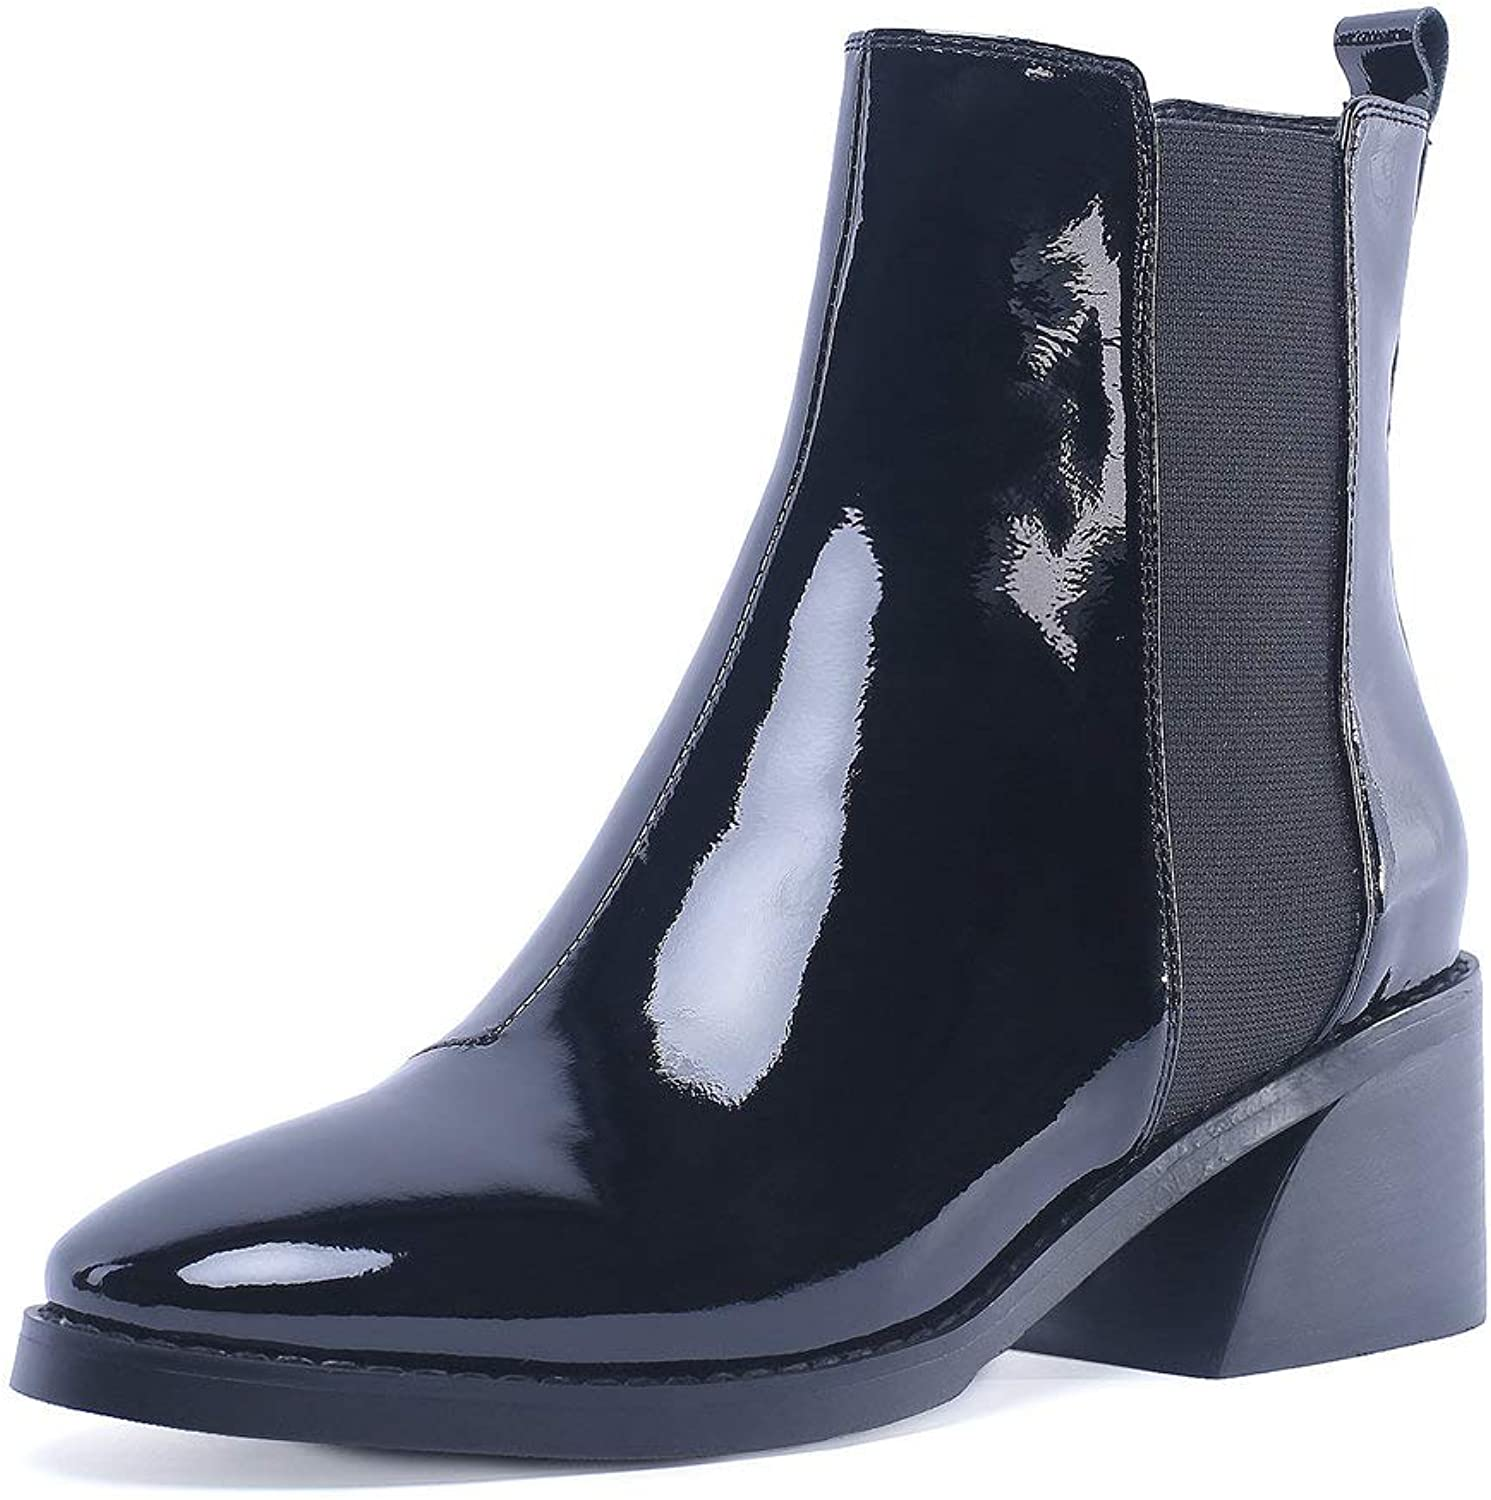 AnMengXinLing Women Ankle Chelsea Boot Low Heel Slip On Patent Leather Western Cowboy Short Booties Comfortable Rain Boots